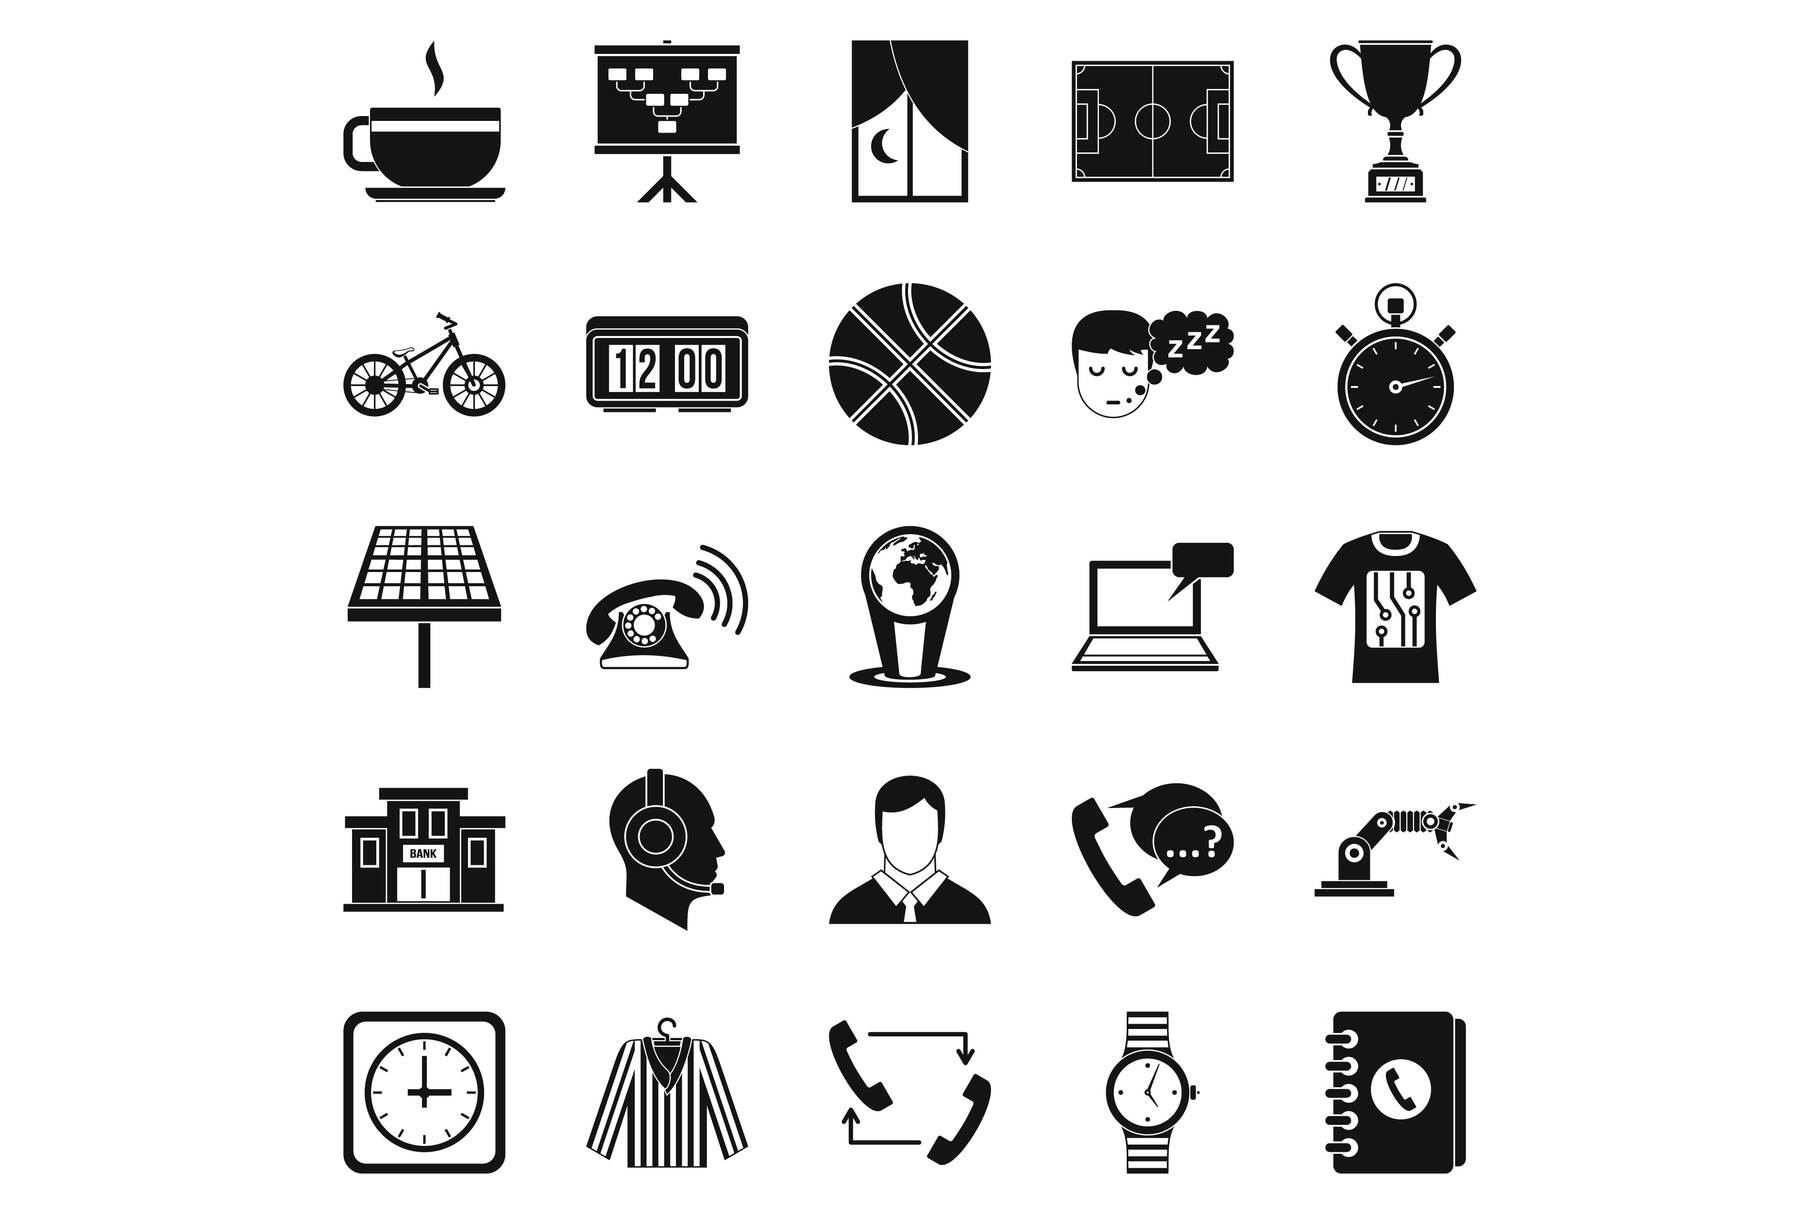 Timepiece icons set, simple style example image 1